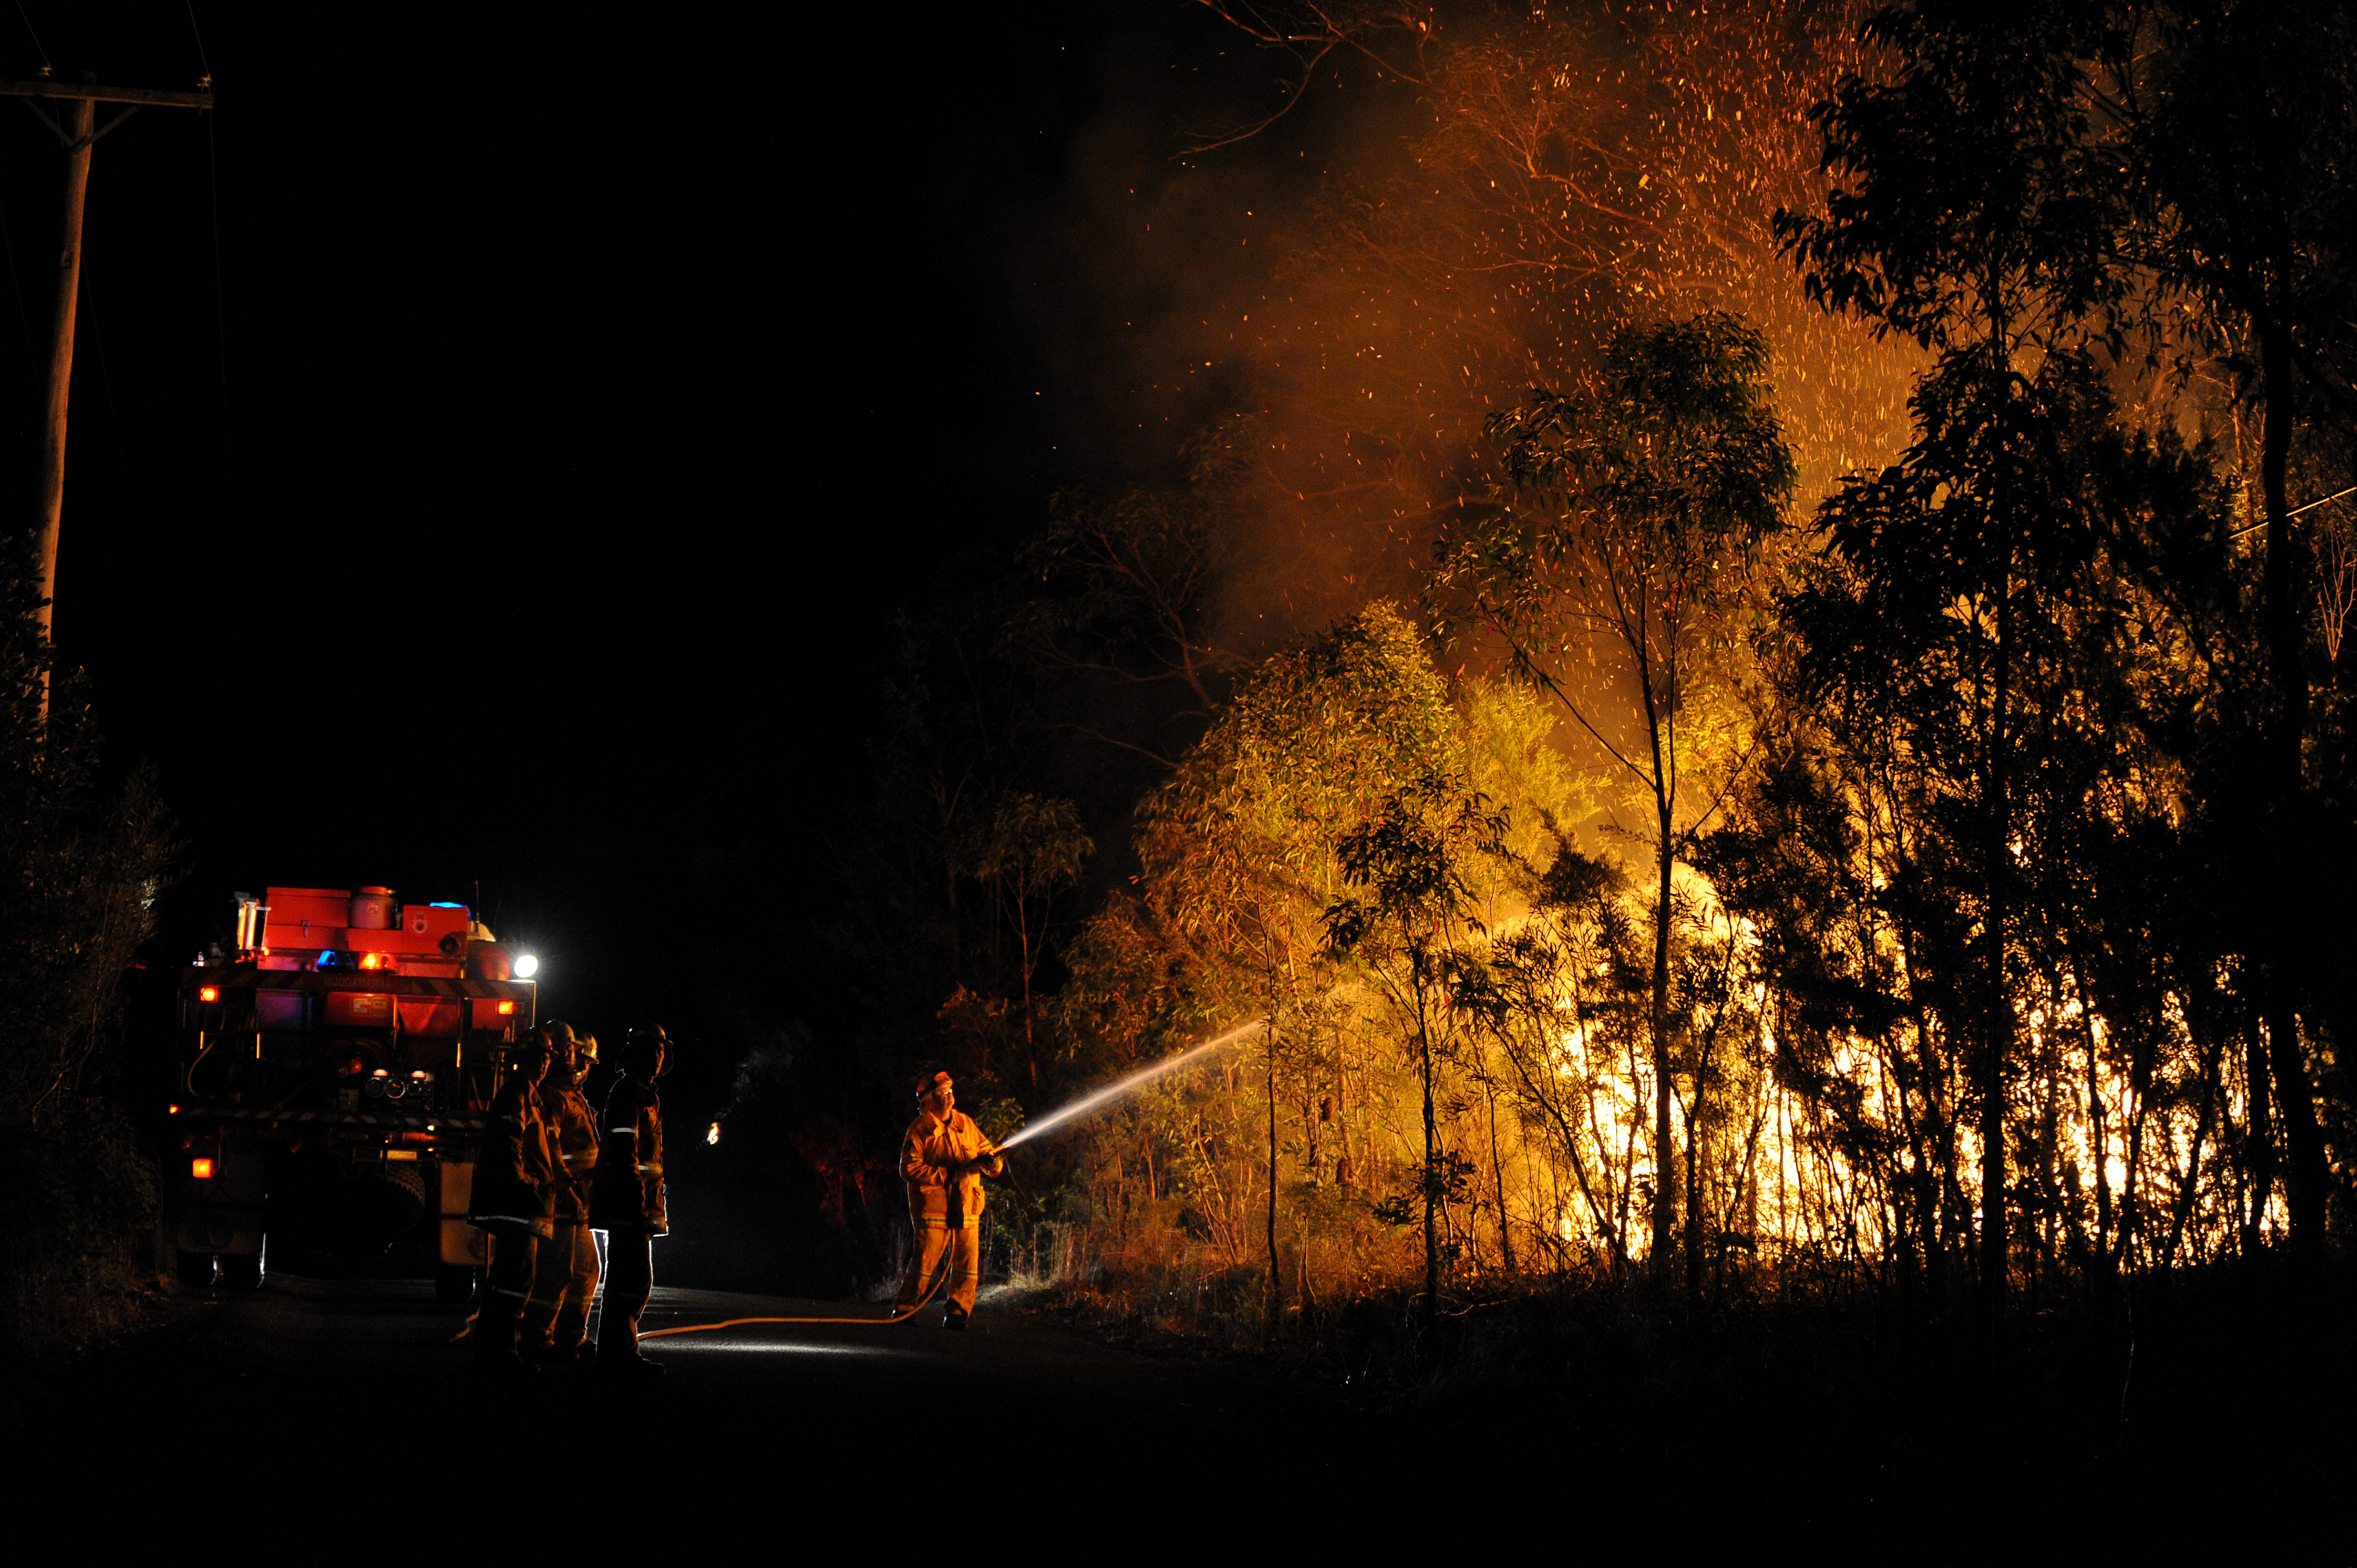 NSW fire monitoring around the ACT